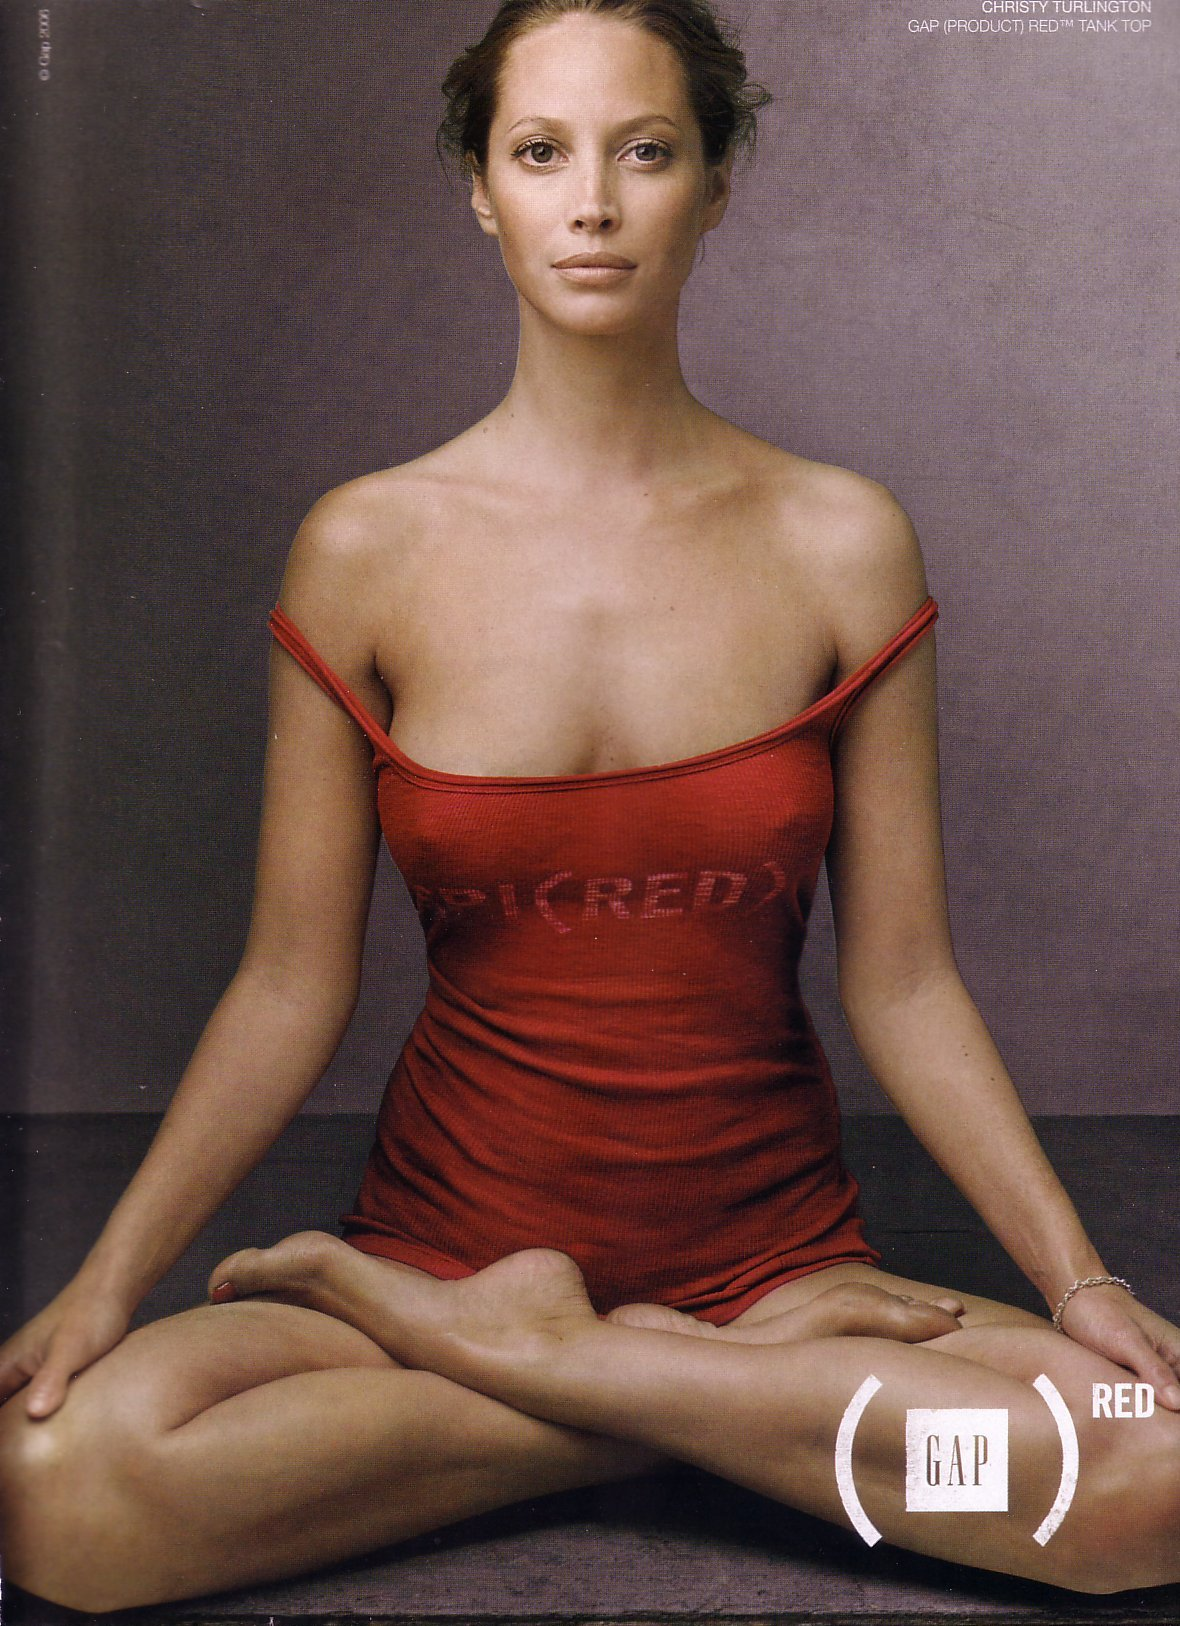 63433d1183875078-christy-turlington-red-shirt-pokies-gap-adv-christy_turlington_gap_red_ttop_nips